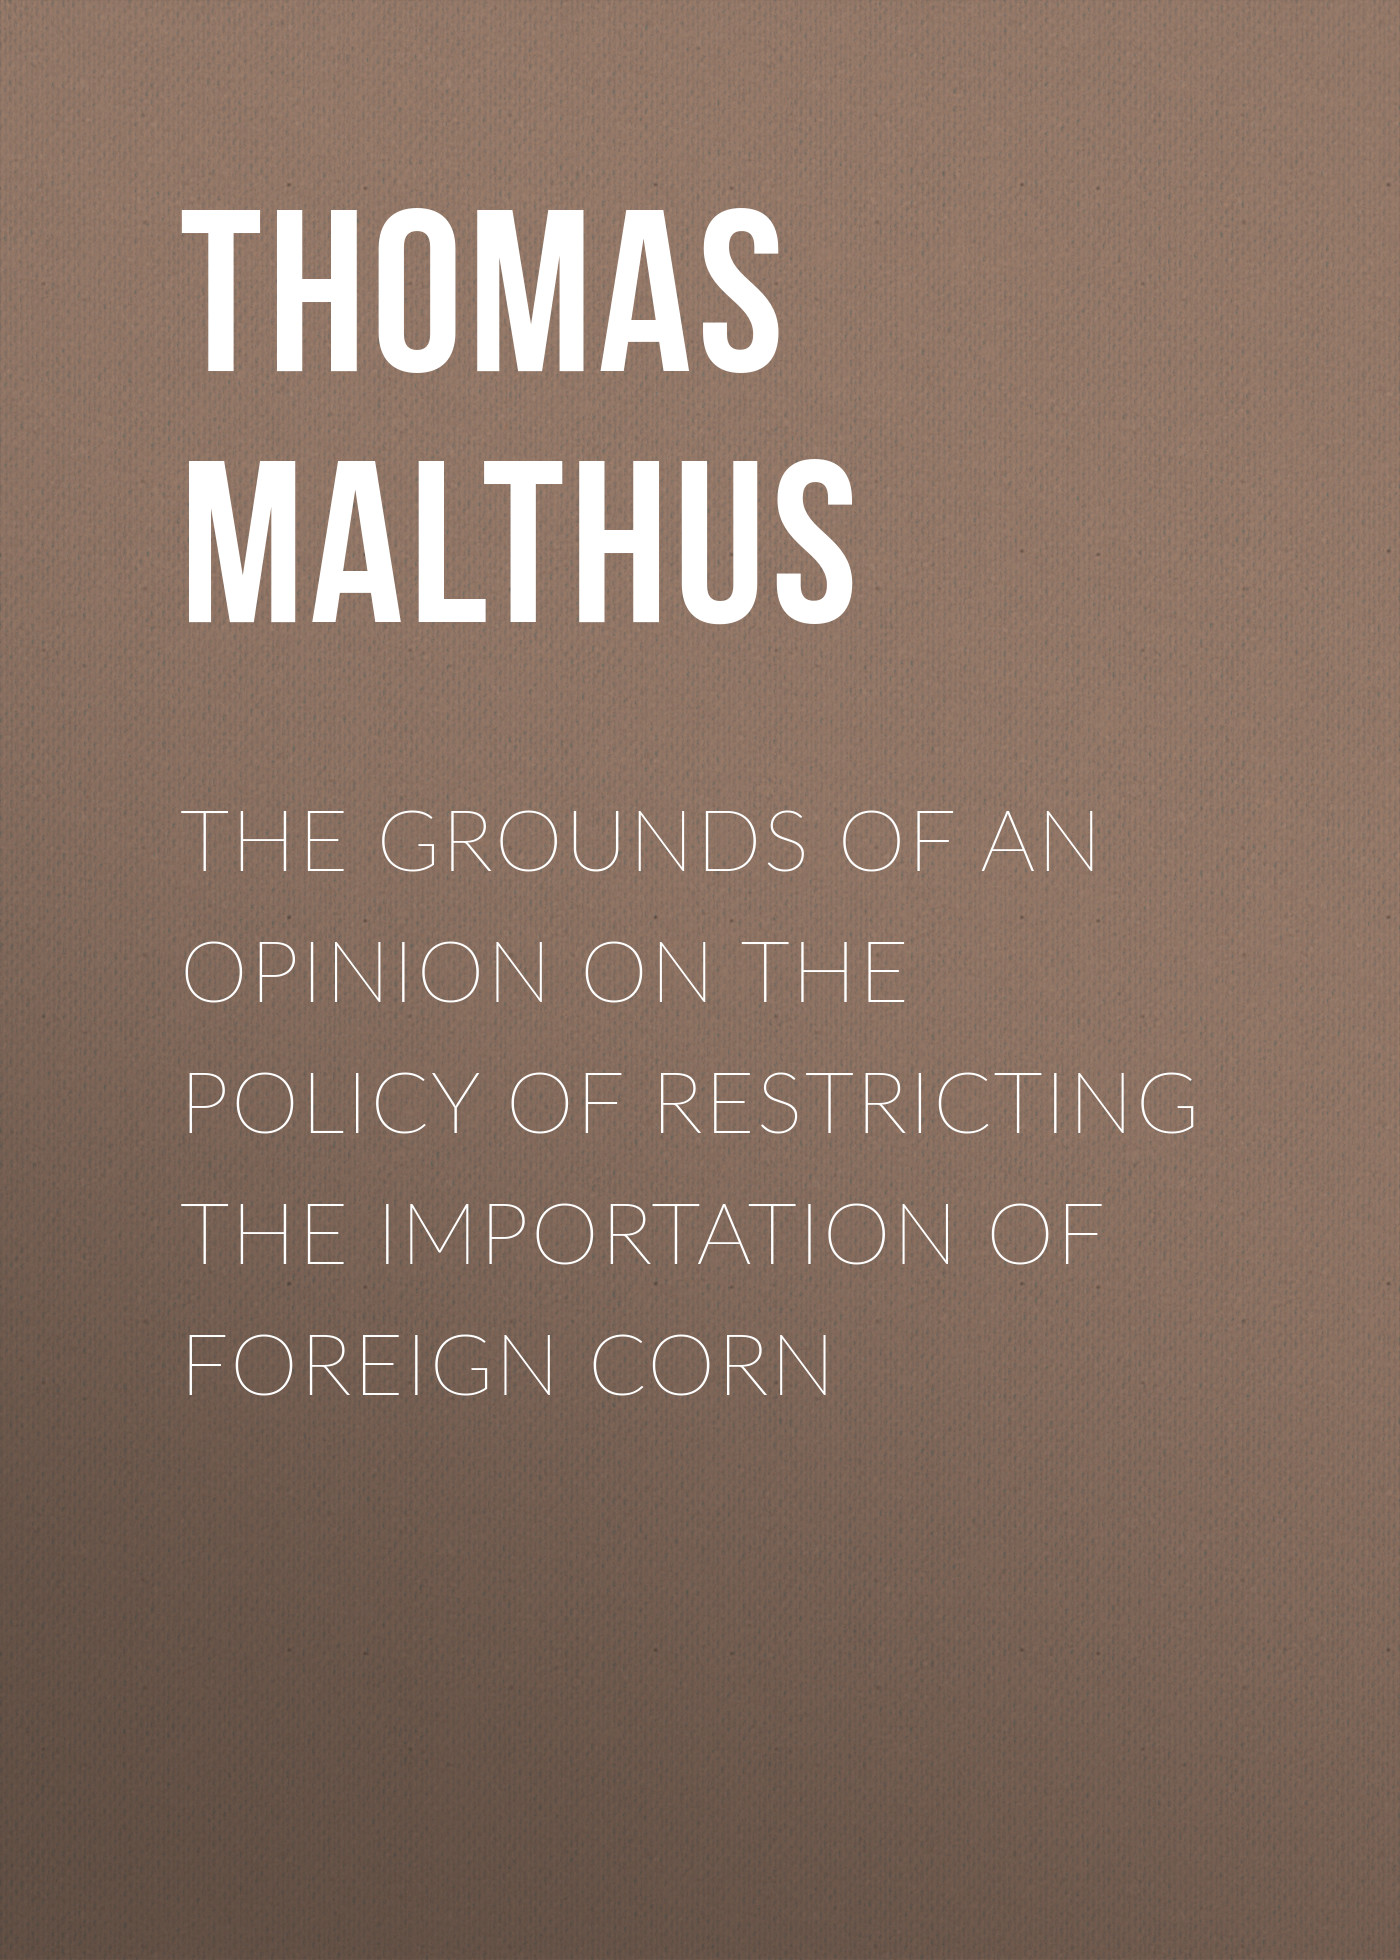 Thomas Malthus The Grounds of an Opinion on the Policy of Restricting the Importation of Foreign Corn thomas robert maltus thomas robert malthus an essay on the principle of population vol 1